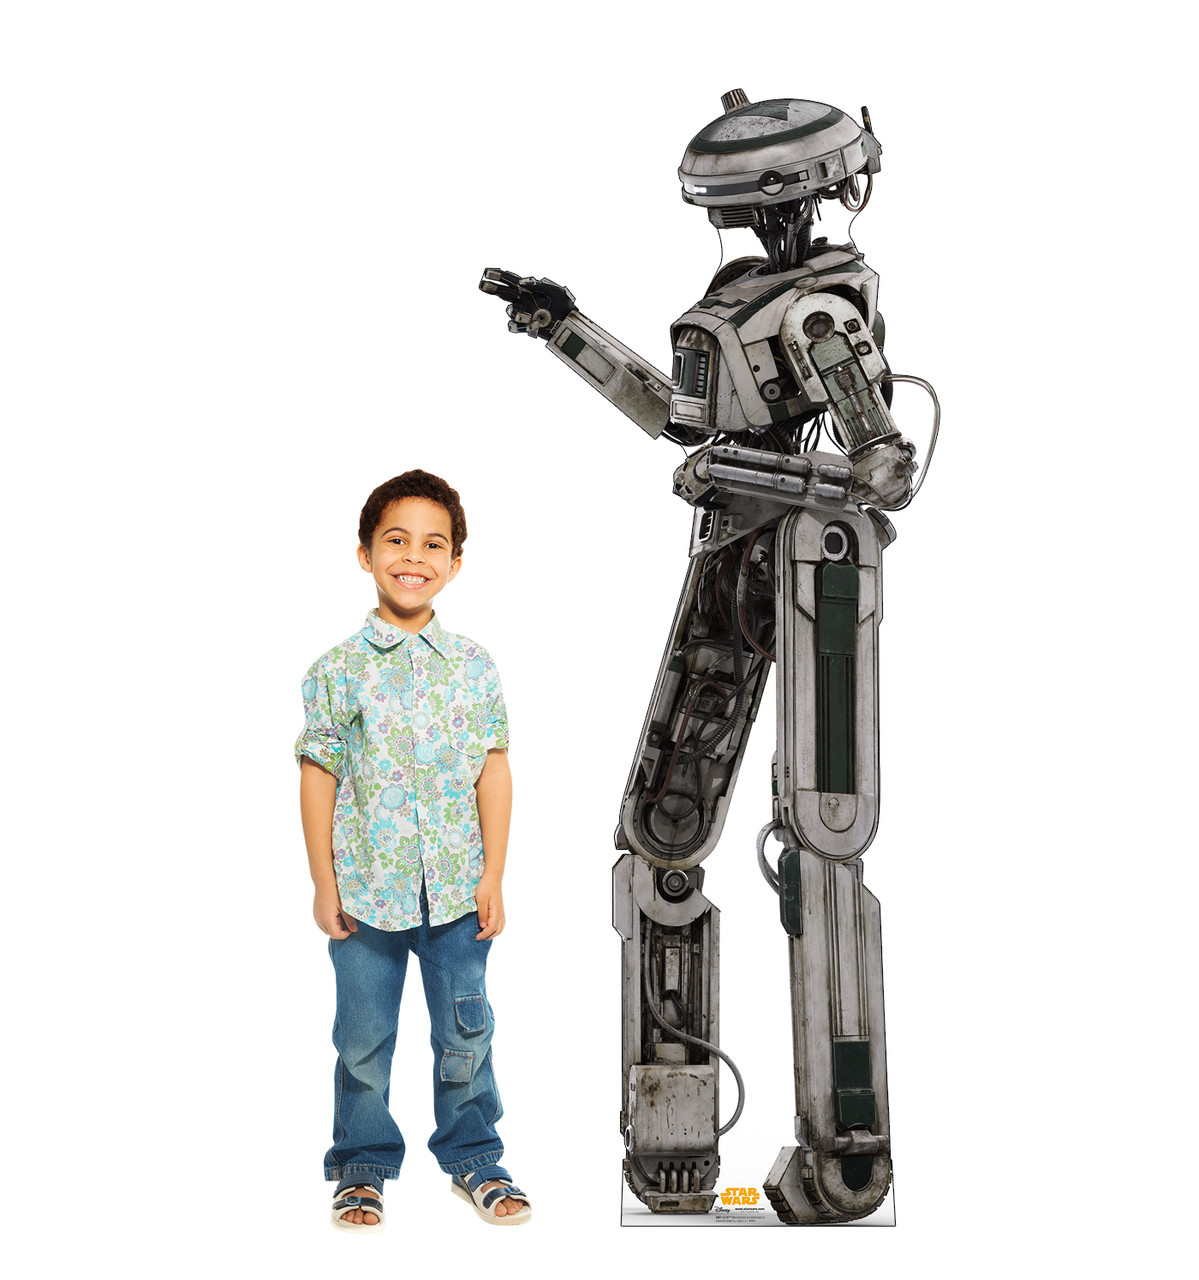 L3-37™  Life size cardboard cutout with model